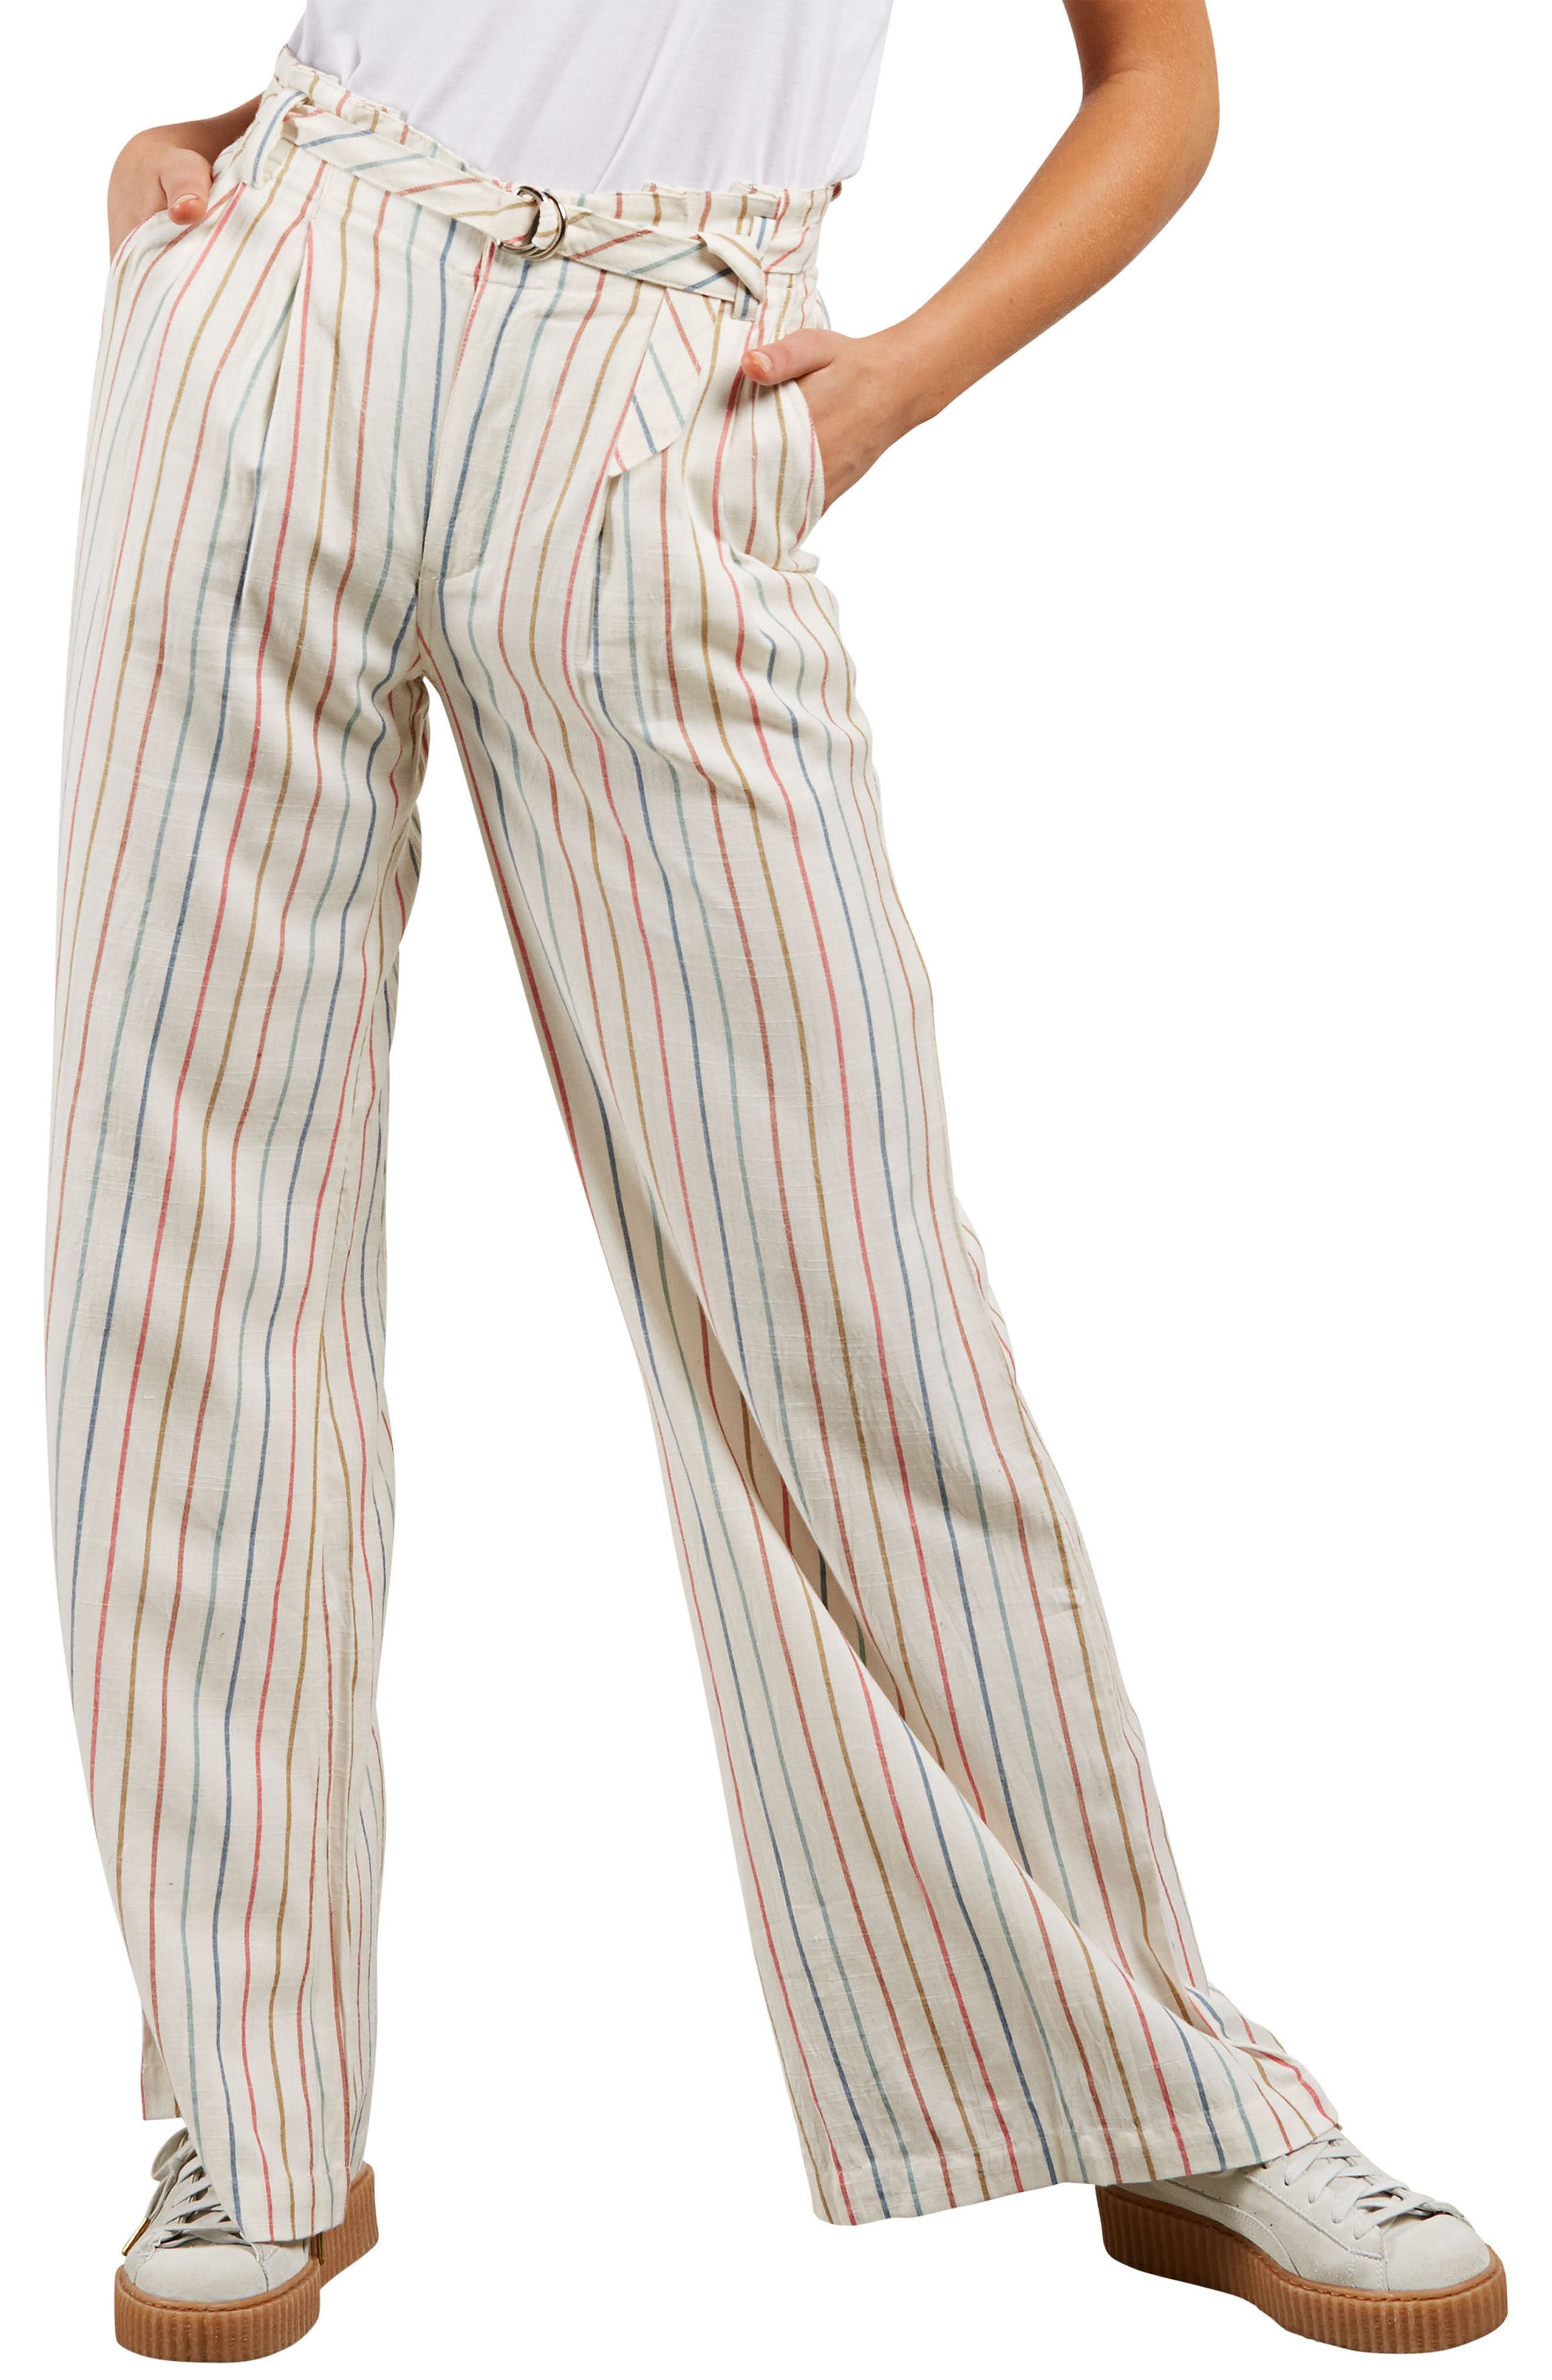 Need Now Stripe Trousers,                         Main,                         color, Multi